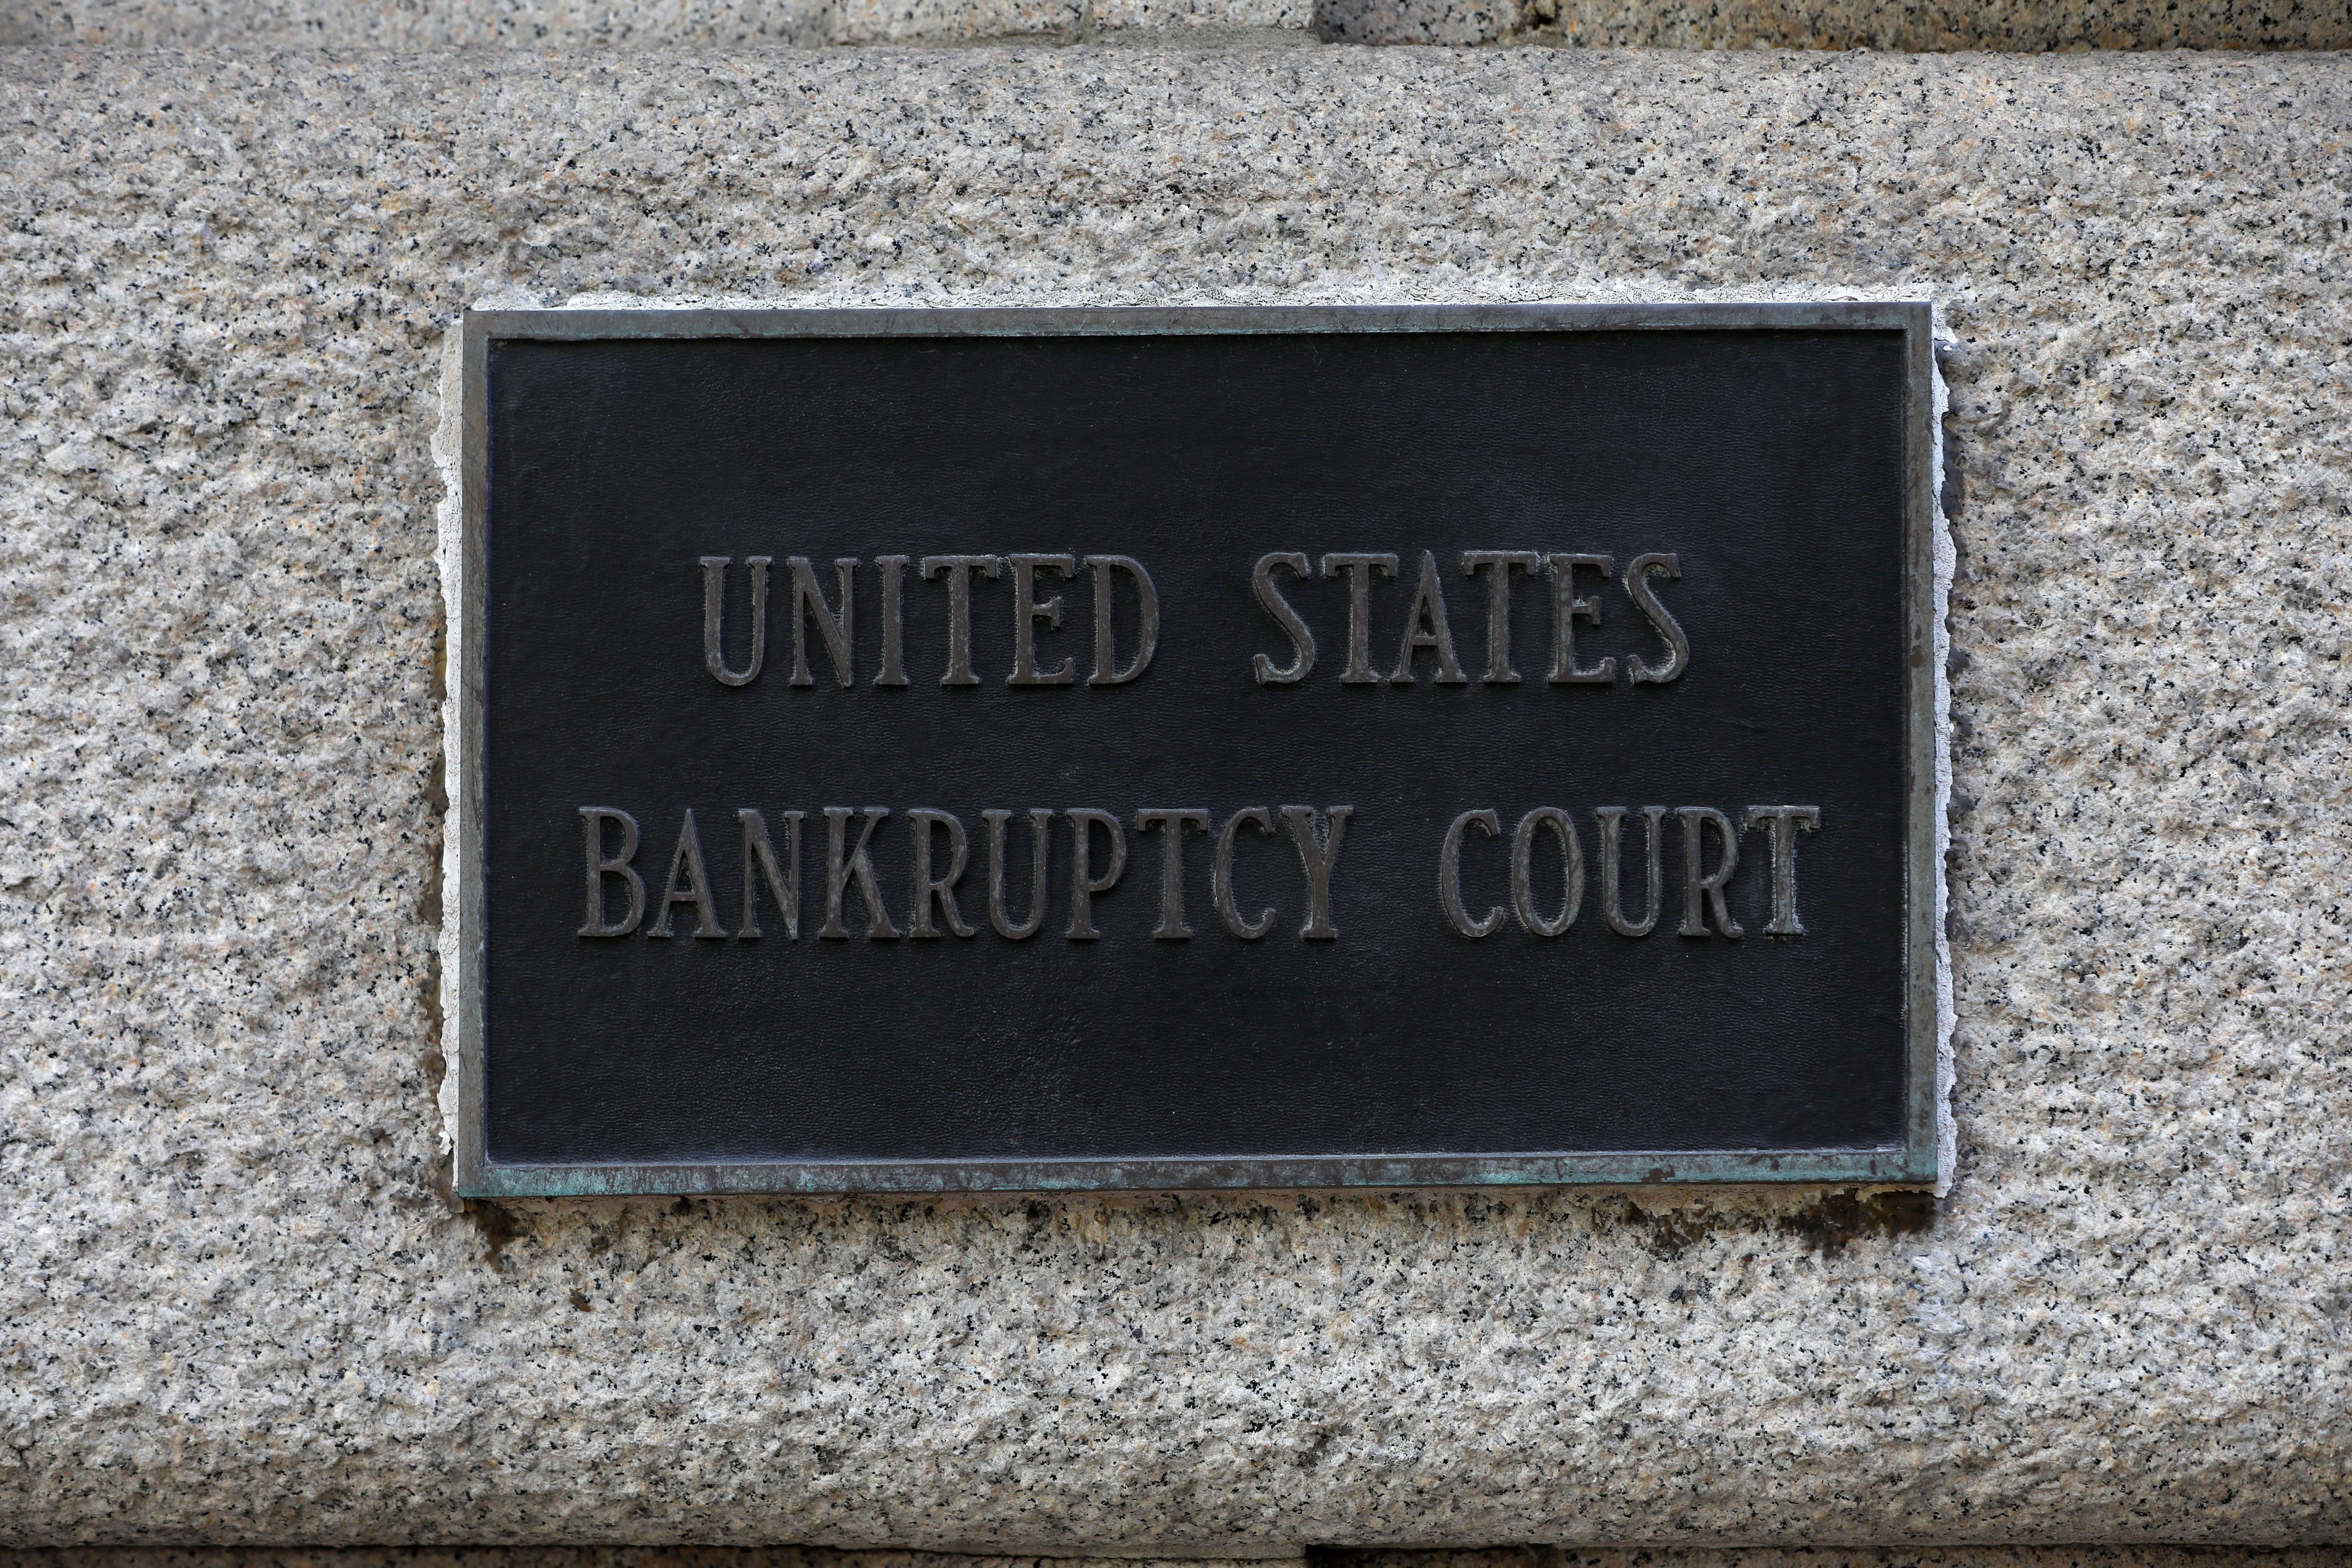 Signage is seen at the United States Bankruptcy Court for the Southern District of New York in Manhattan, New York City, U.S., August 24, 2020. REUTERS/Andrew Kelly